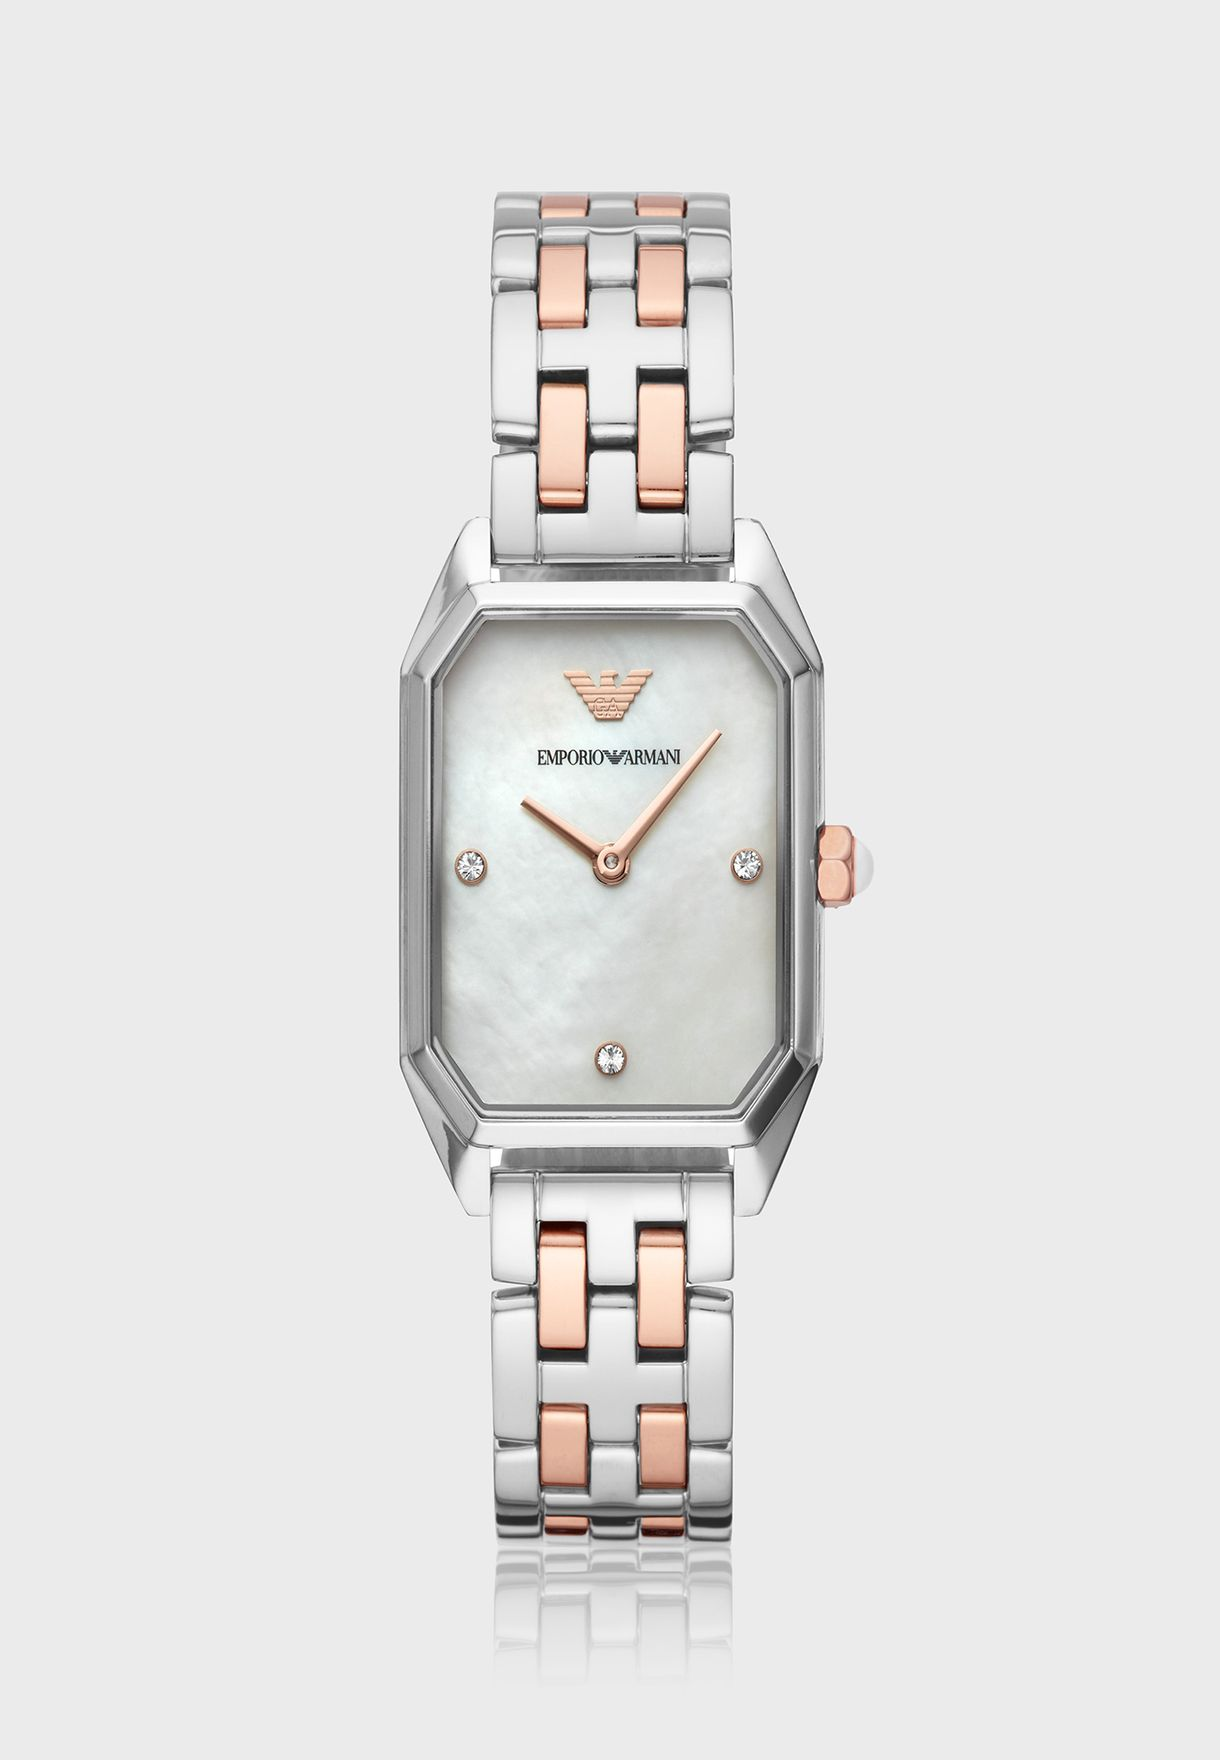 7a9f3a32ee AR11146 Gioia Dress Watch